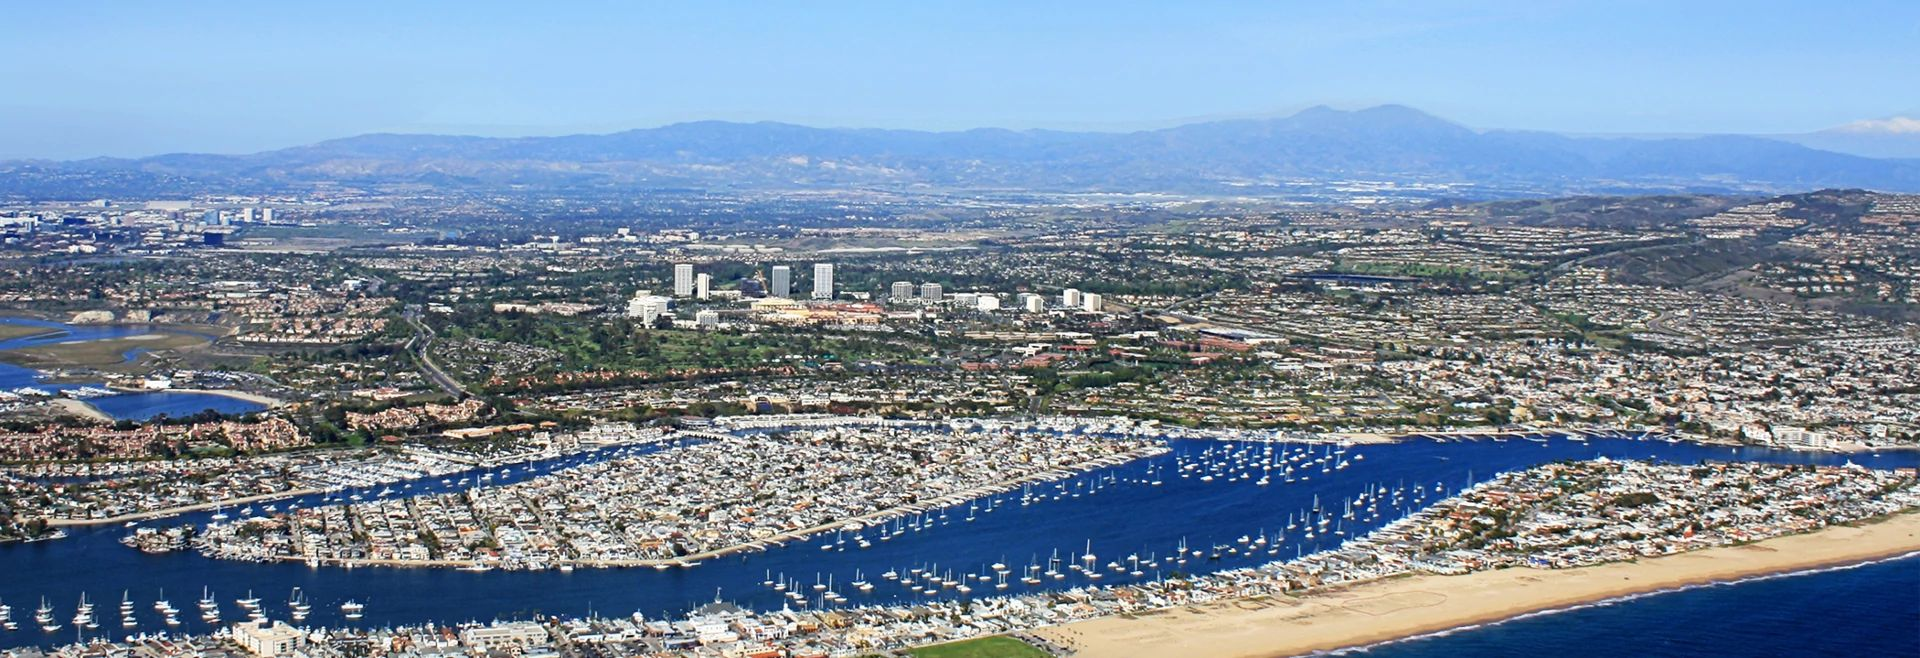 Overview of Newport Beach, CA